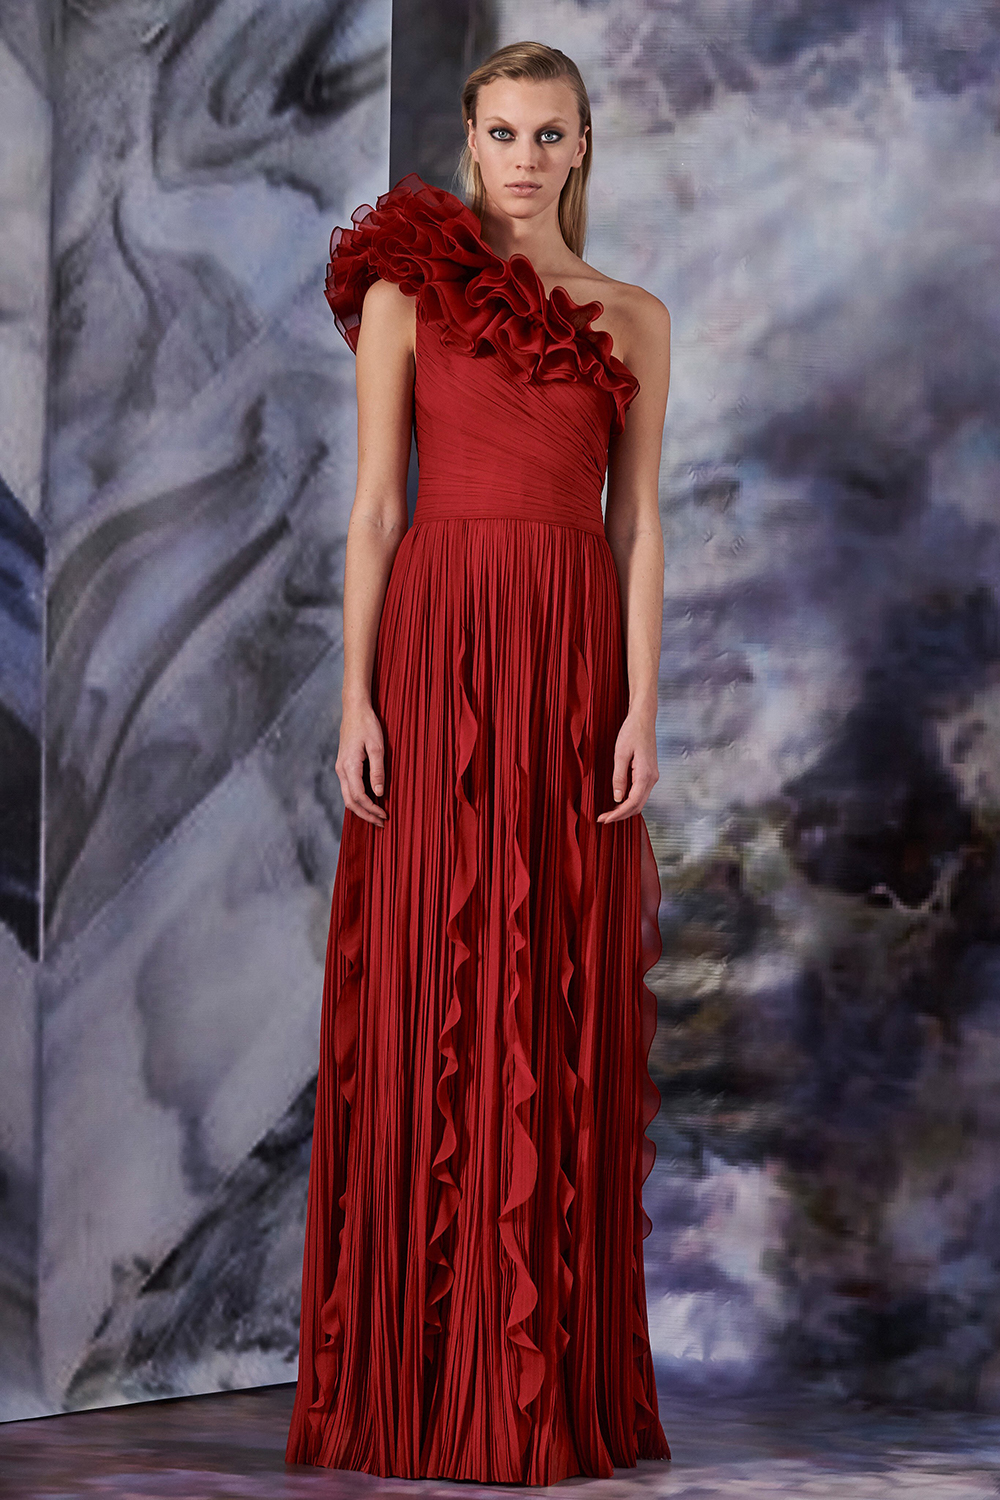 Best NYFW Looks I J.Mendel Fall 2019 Collection #NYFW #Fall2019 #FW19 #Runway